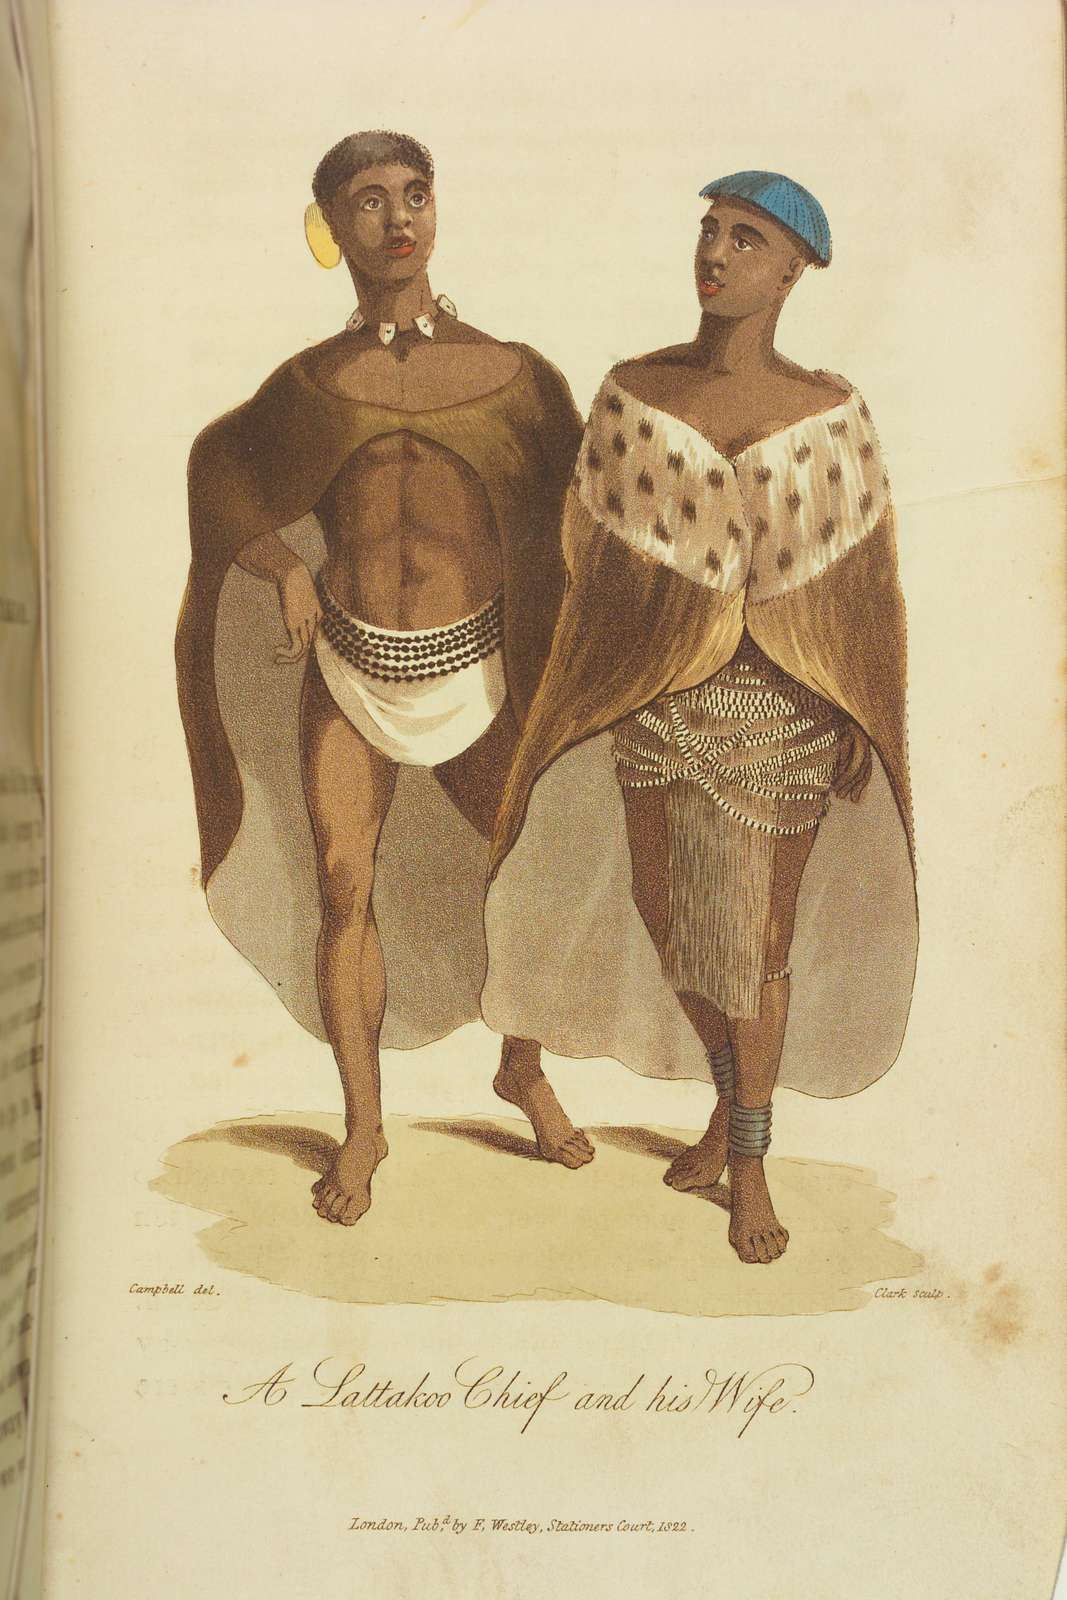 A Lattakoo Chief and his Wife